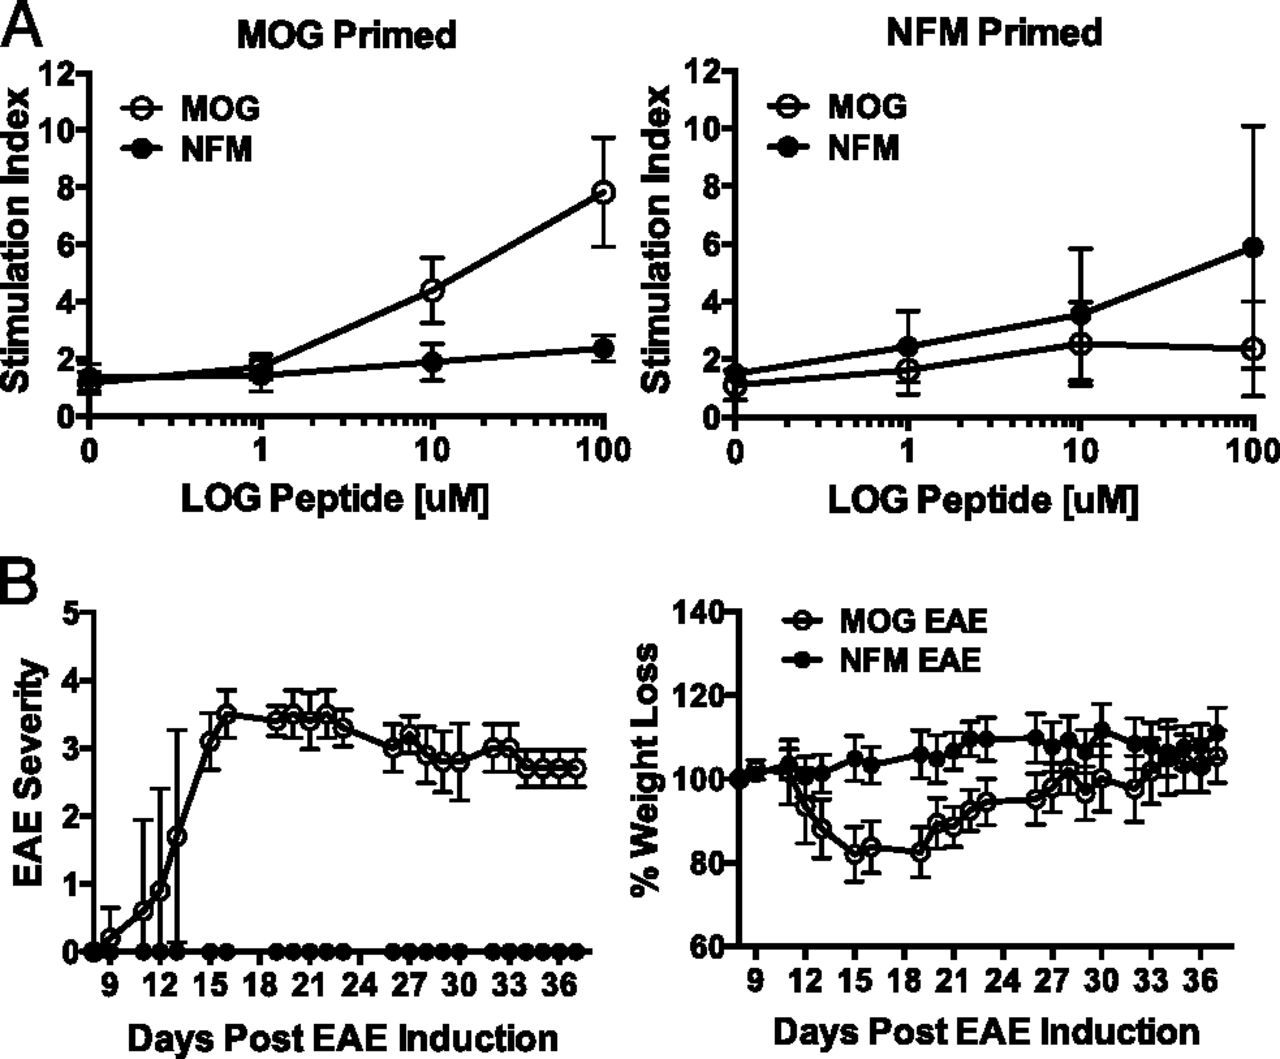 NFM Cross-Reactivity to MOG Does Not Expand a Critical